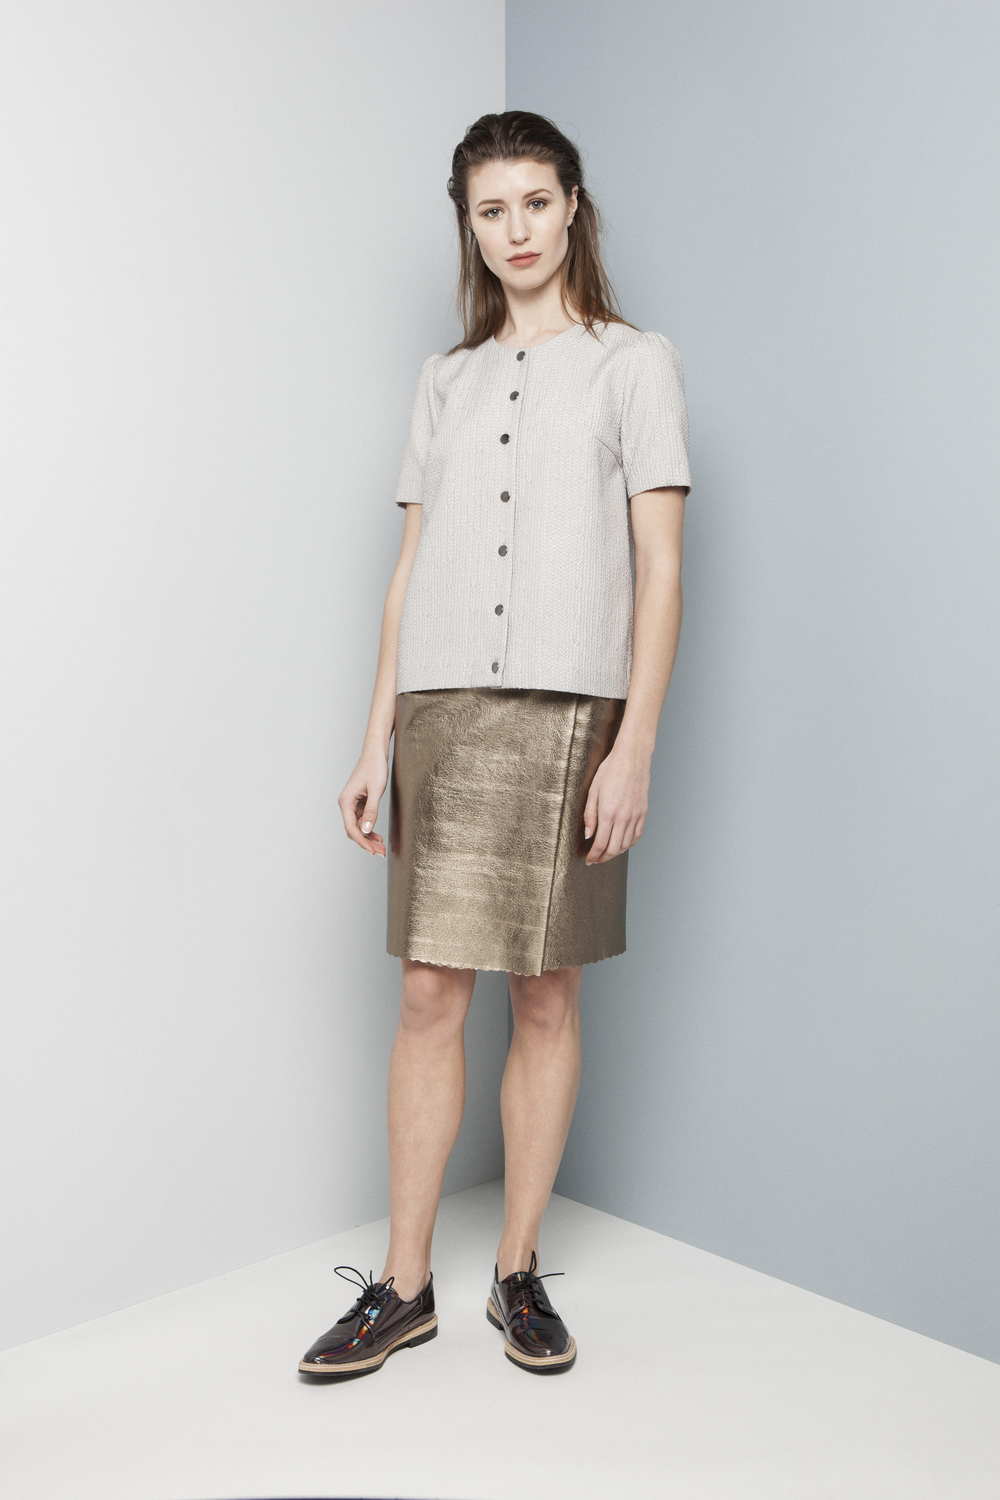 Manley AW14 Rylie Jacket €195 and Rylie Metallic Skirt (pewter) €286.jpg